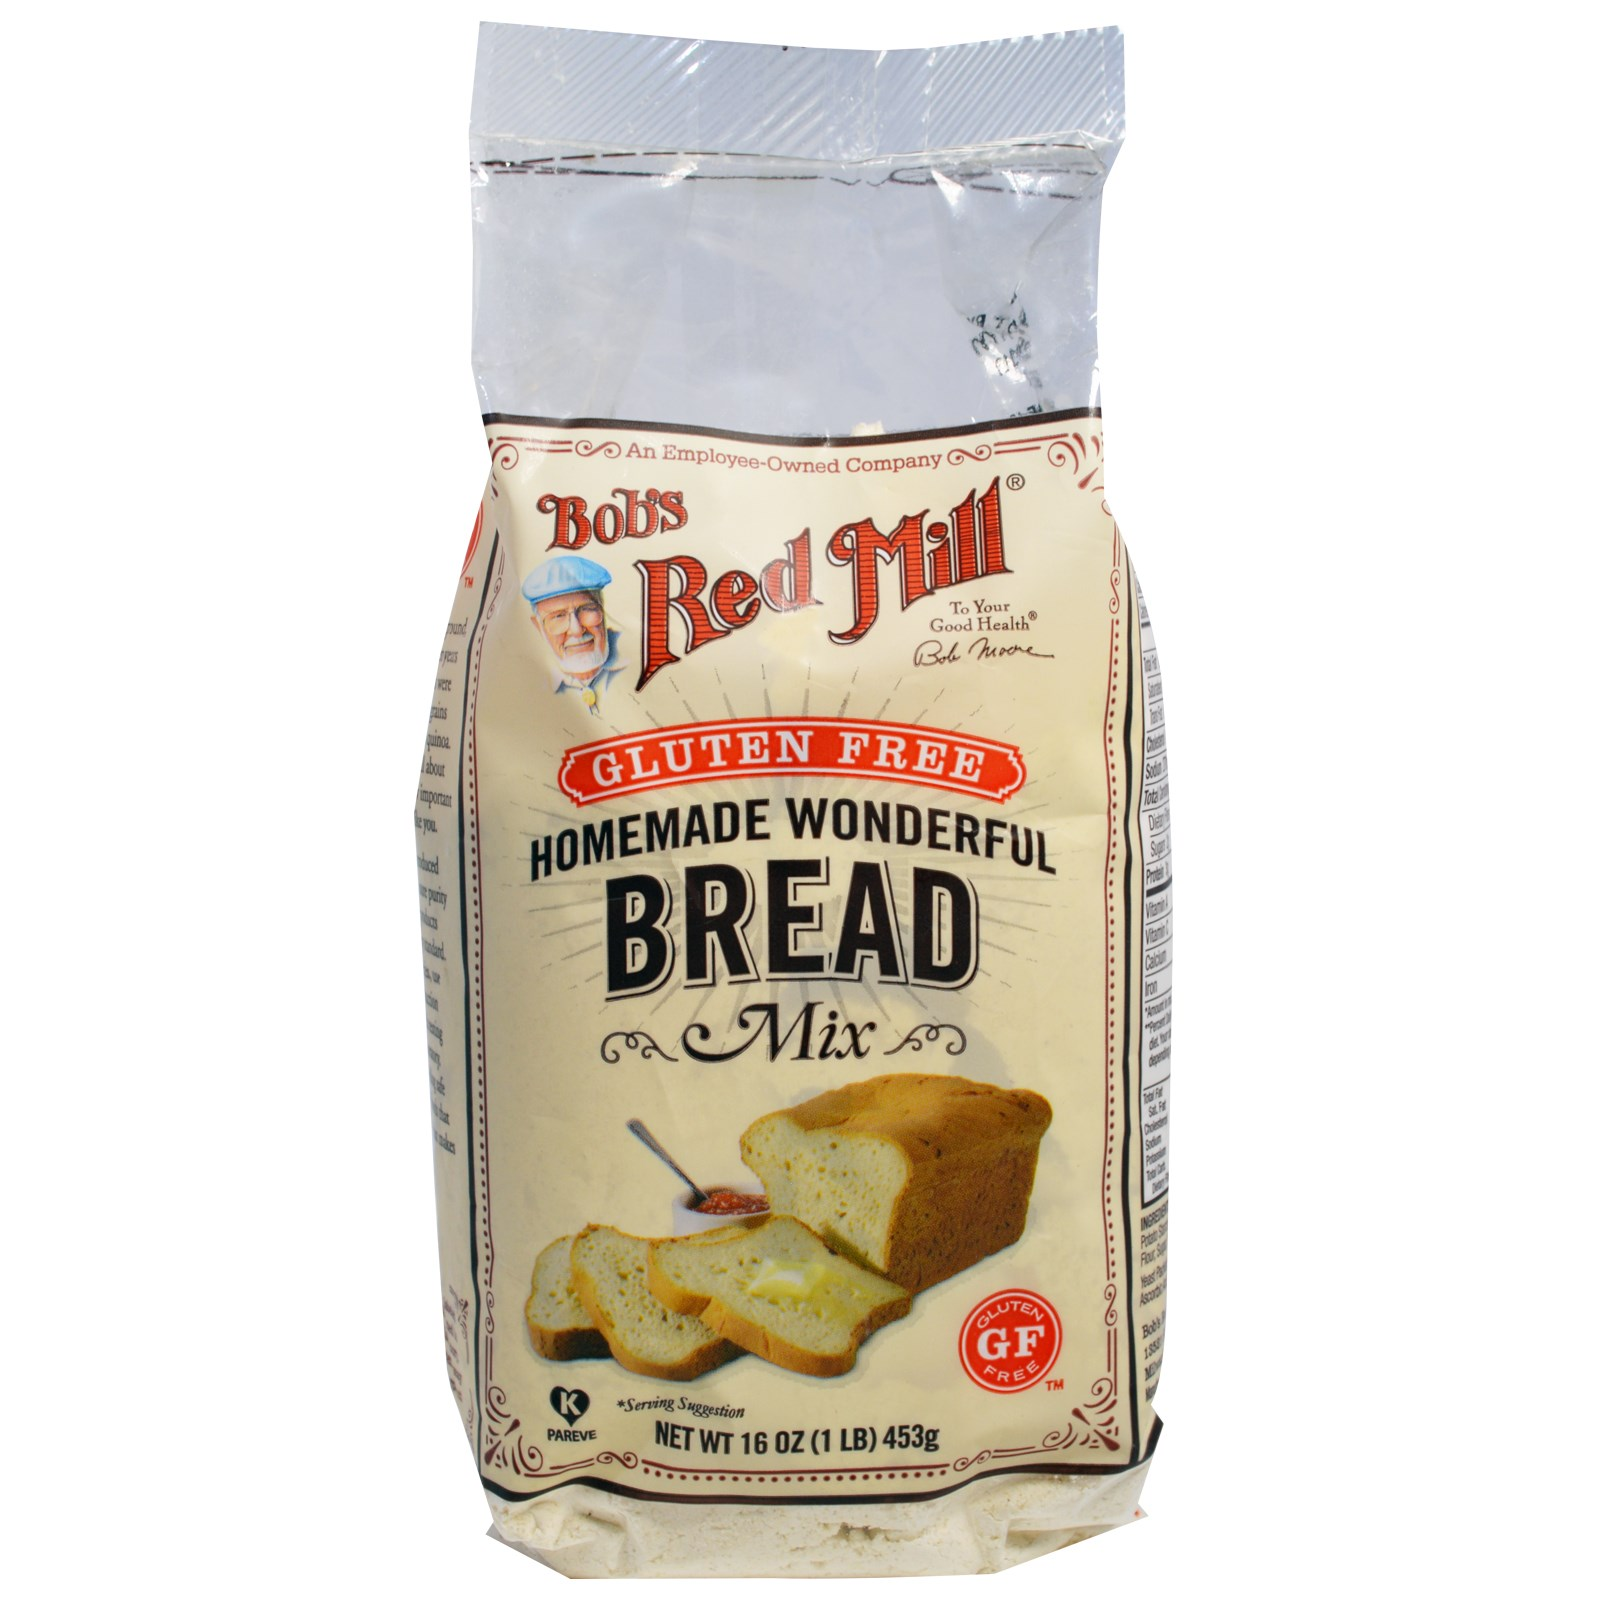 Bob's Red Mill, Homemade Wonderful Bread Mix, Gluten Free, 16 oz (pack of 2)